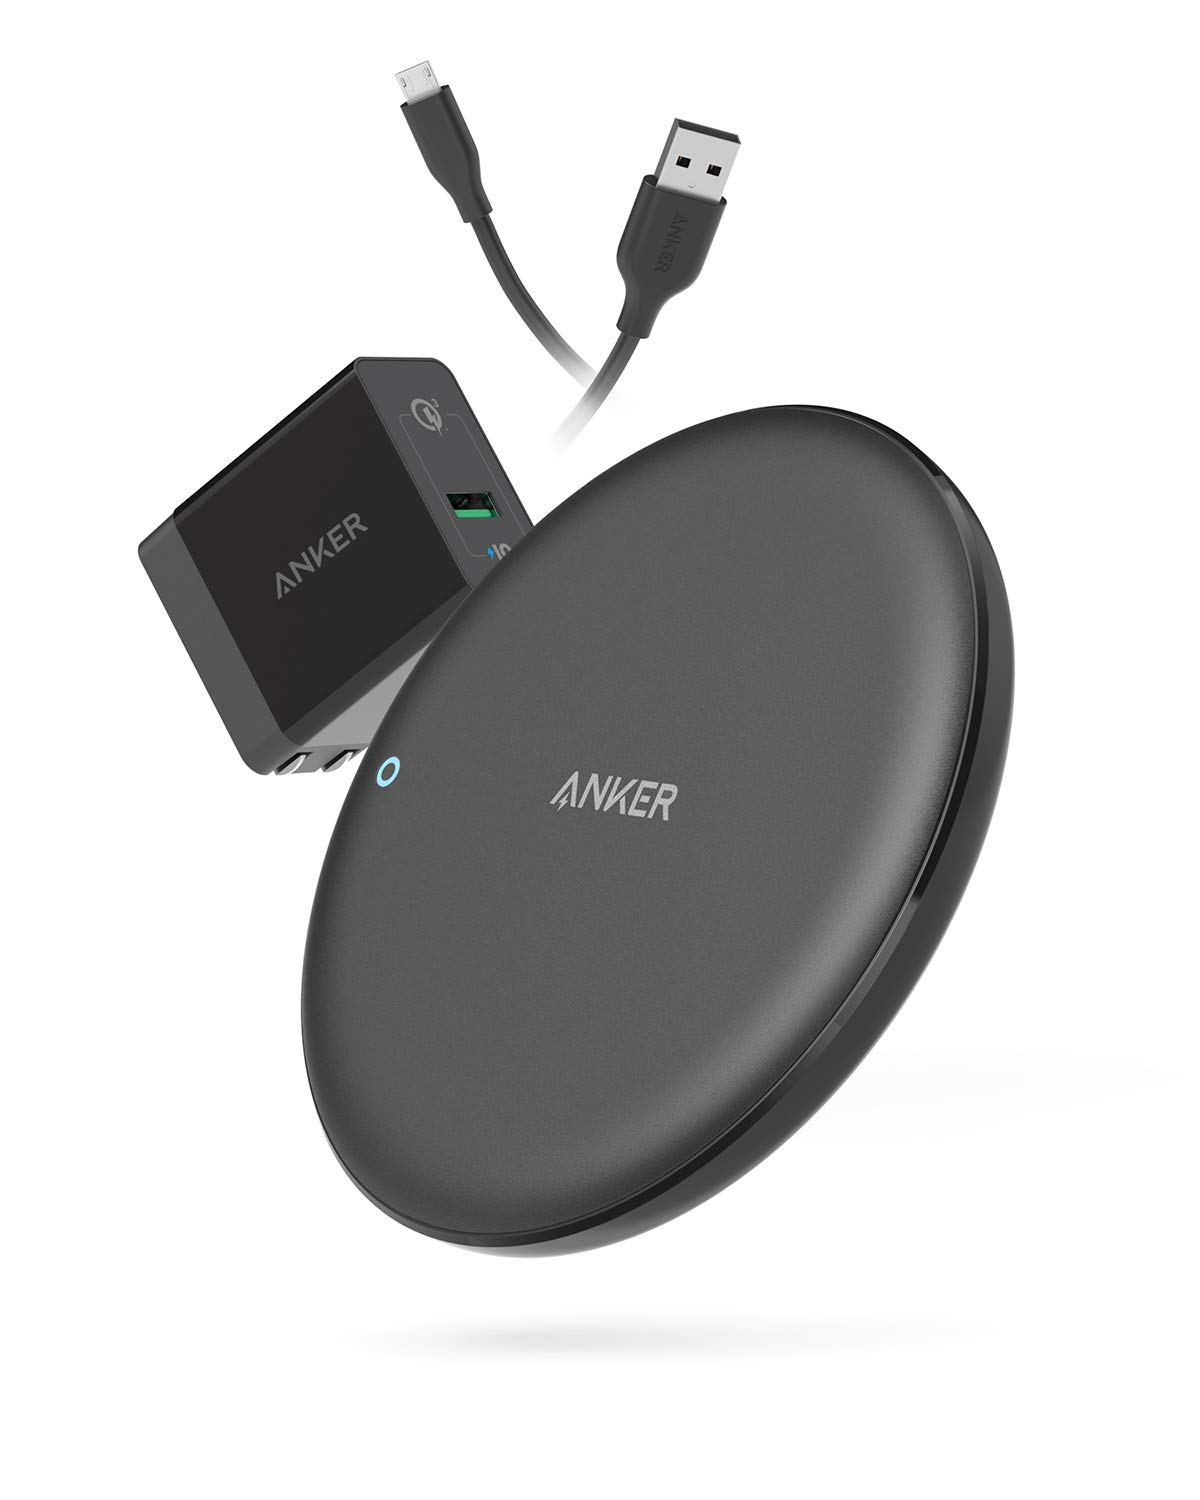 Anker Wireless Charger, PowerWave 7.5 Pad with Internal Cooling Fan, 7.5W for iPhone 11, 11 Pro, 11 Pro Max, XS Max, XR, XS, X, 8, 8 Plus, 10W for Galaxy S10 S9 S8, Note 10 (with Quick Charge Adapter) by Anker